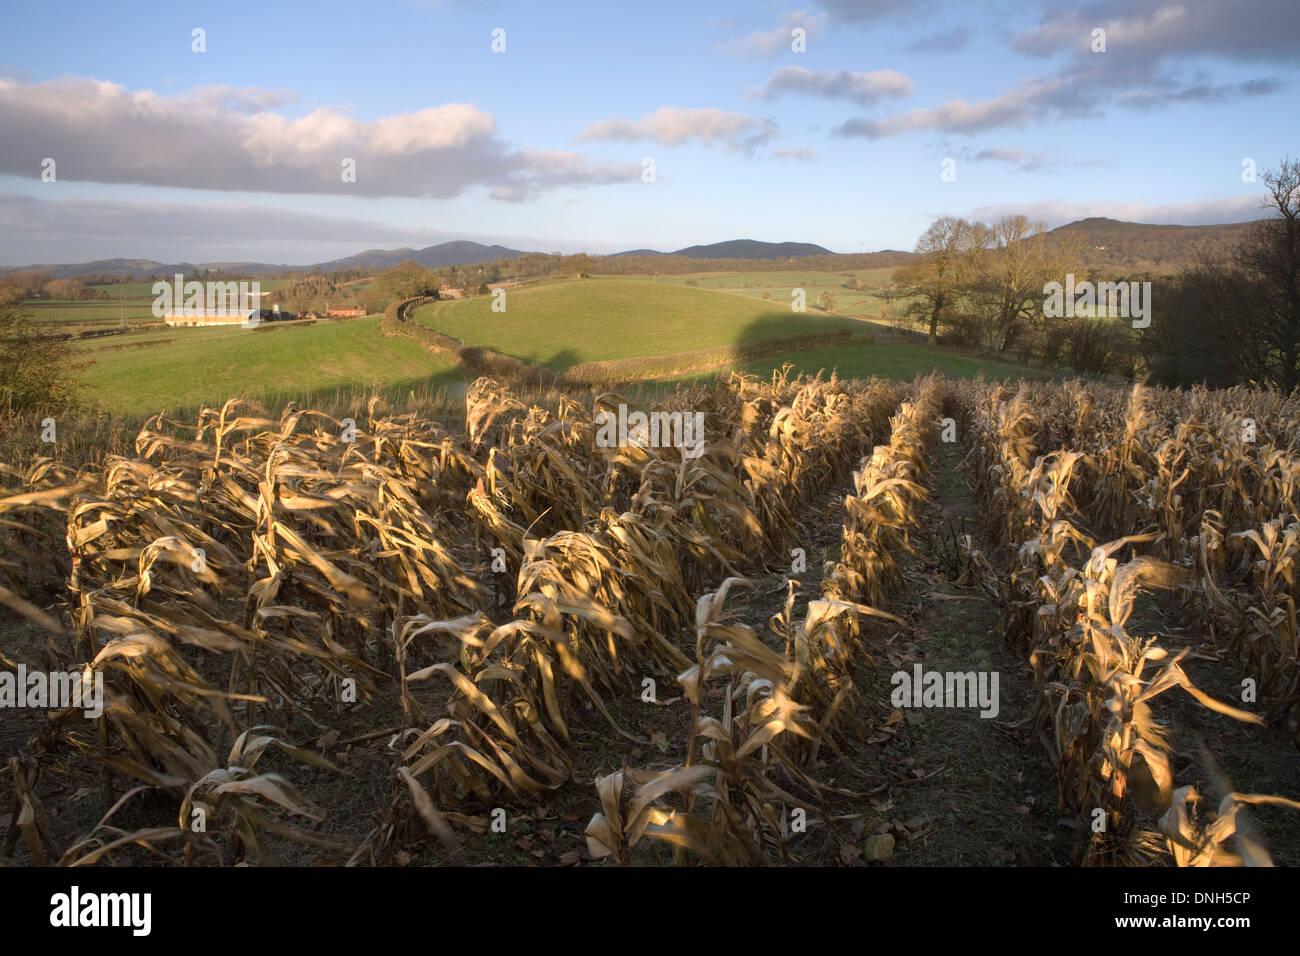 Corn left in a field over Winter in Herefordshire. The Malvern Hills can be seen in the background. Stock Photo